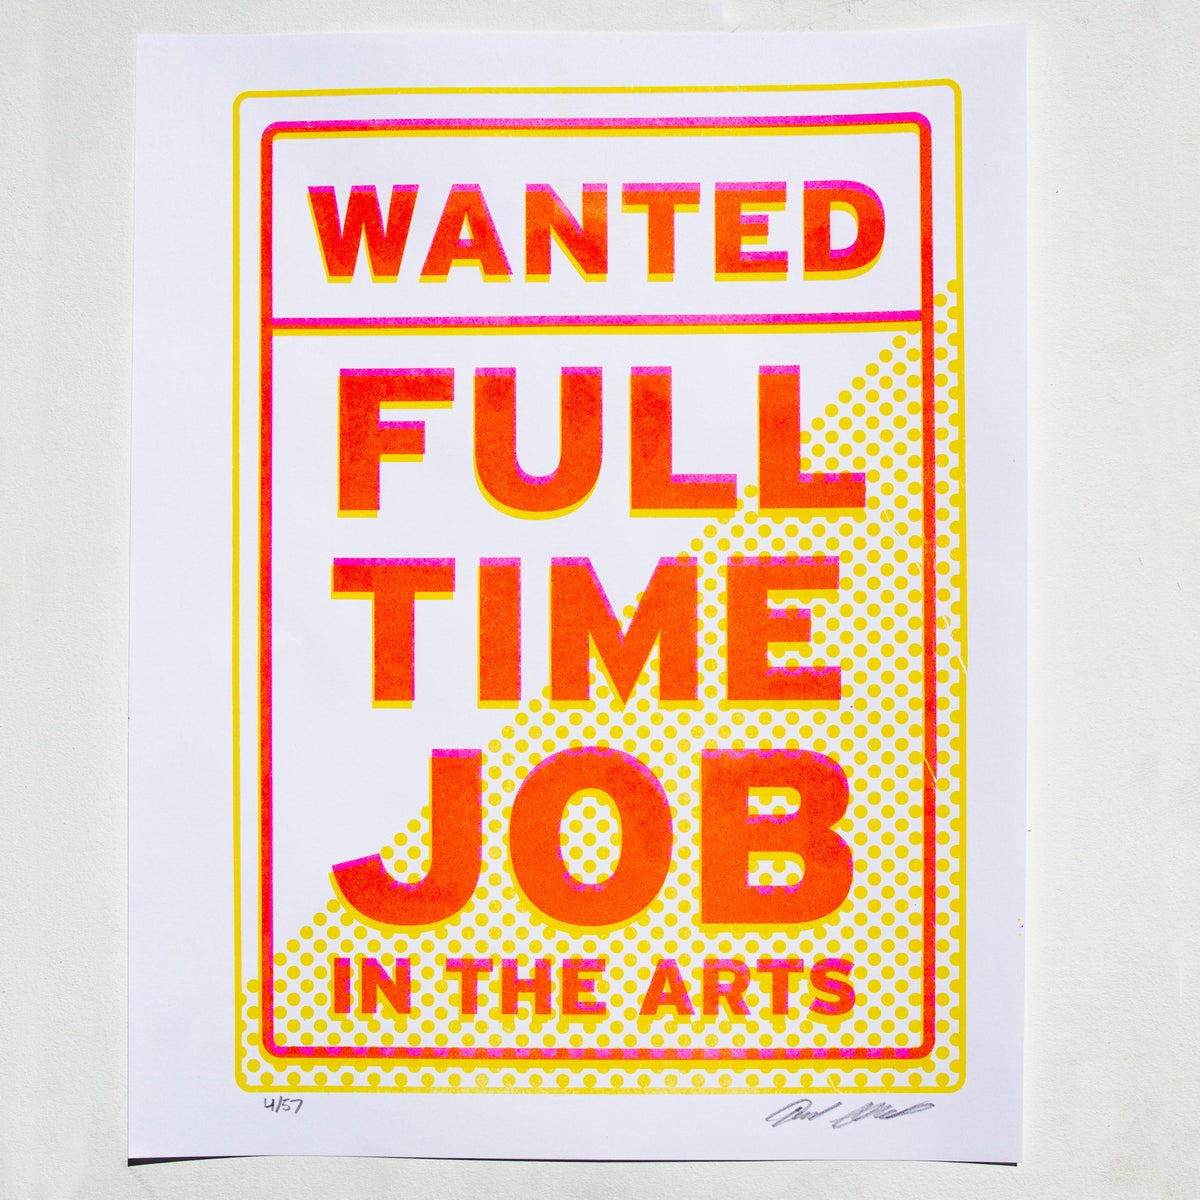 Image of Wanted: Full Time Job in the Arts